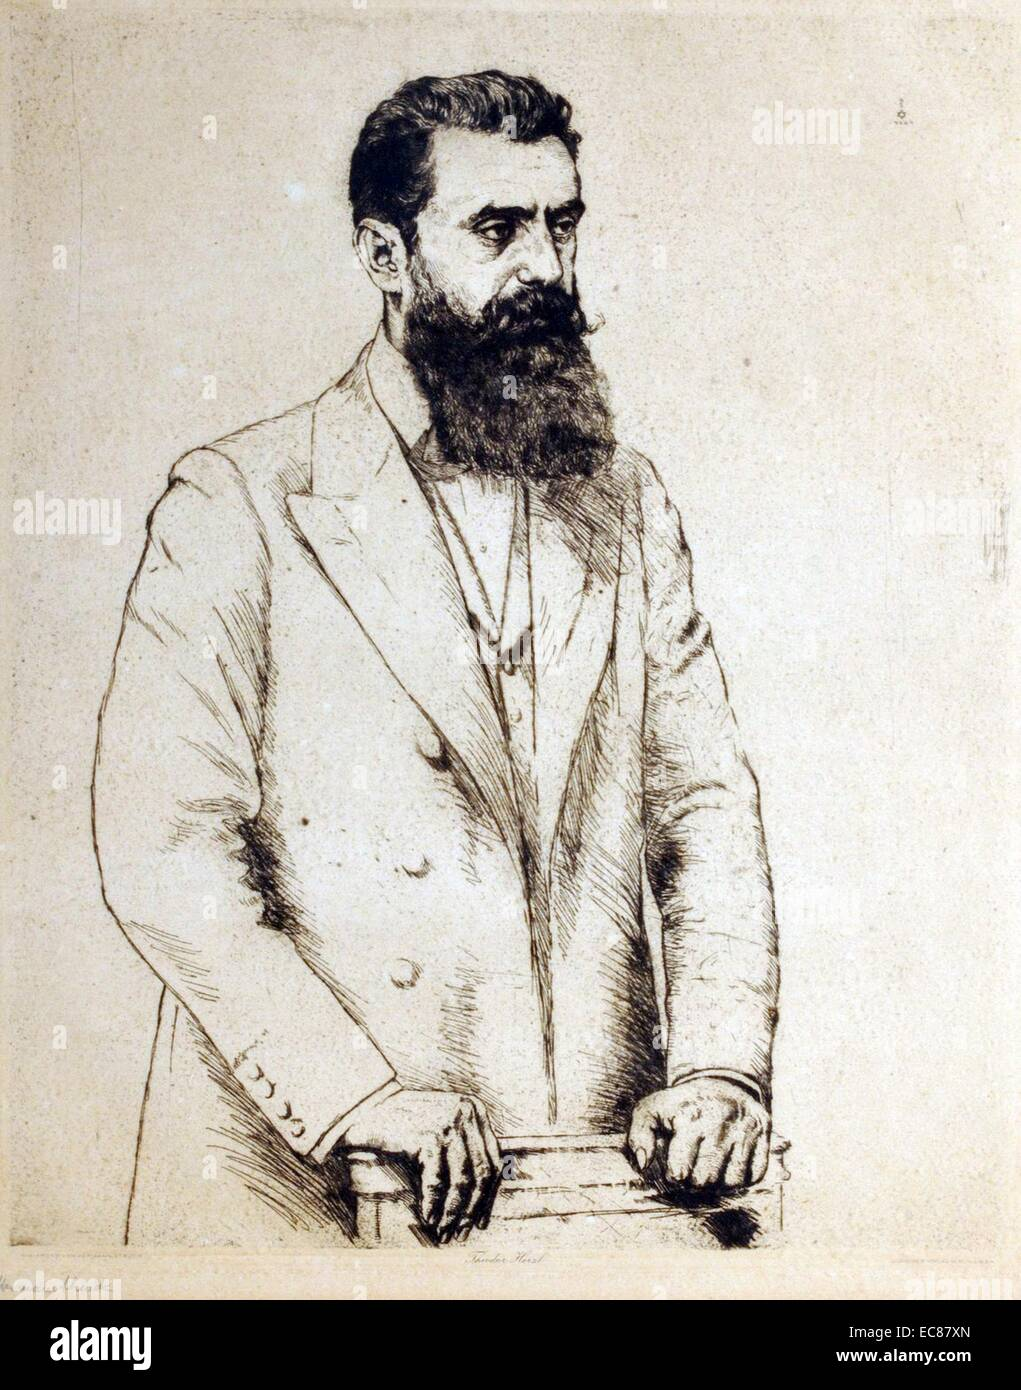 Portrait of Theodor Herzl (1860-1904) Austro-Hungarian journalist, playwright, political activist and writer. Dated - Stock Image